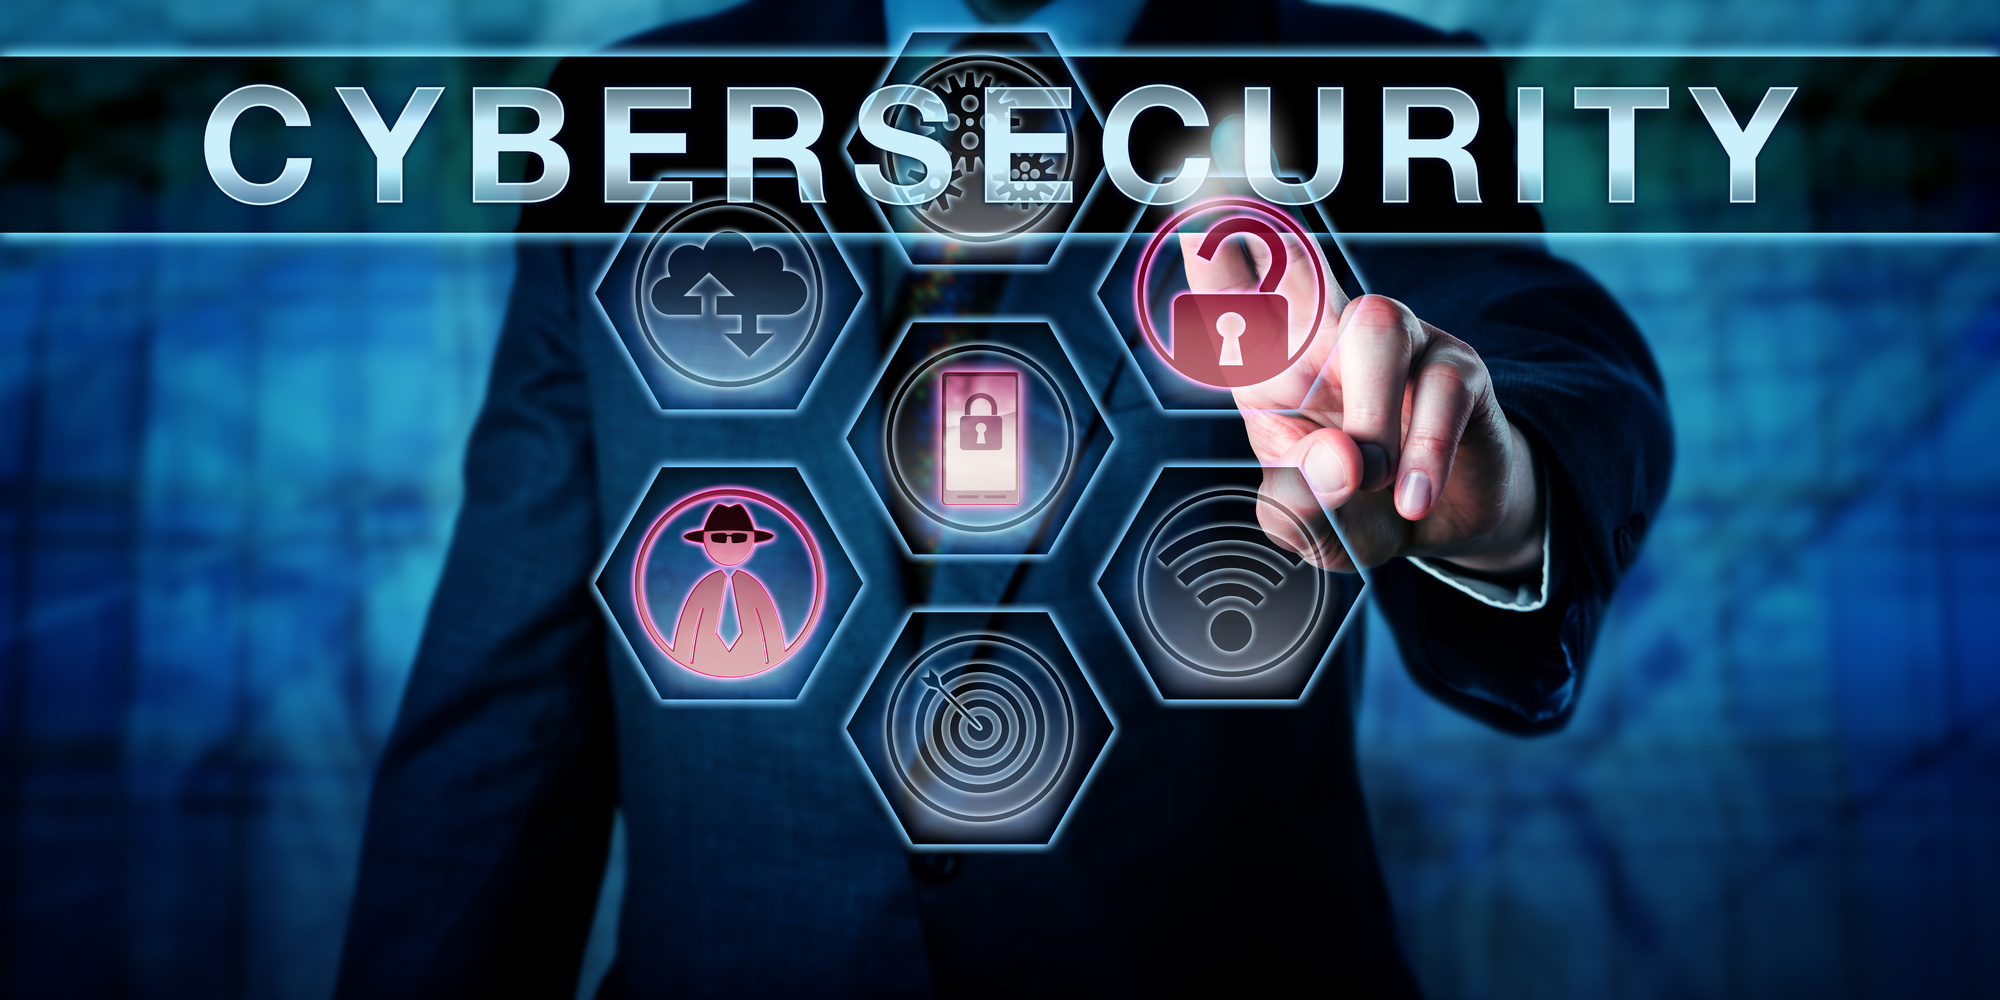 8 Cybersecurity Tips for Small Businesses Looking to Keep Data Safe